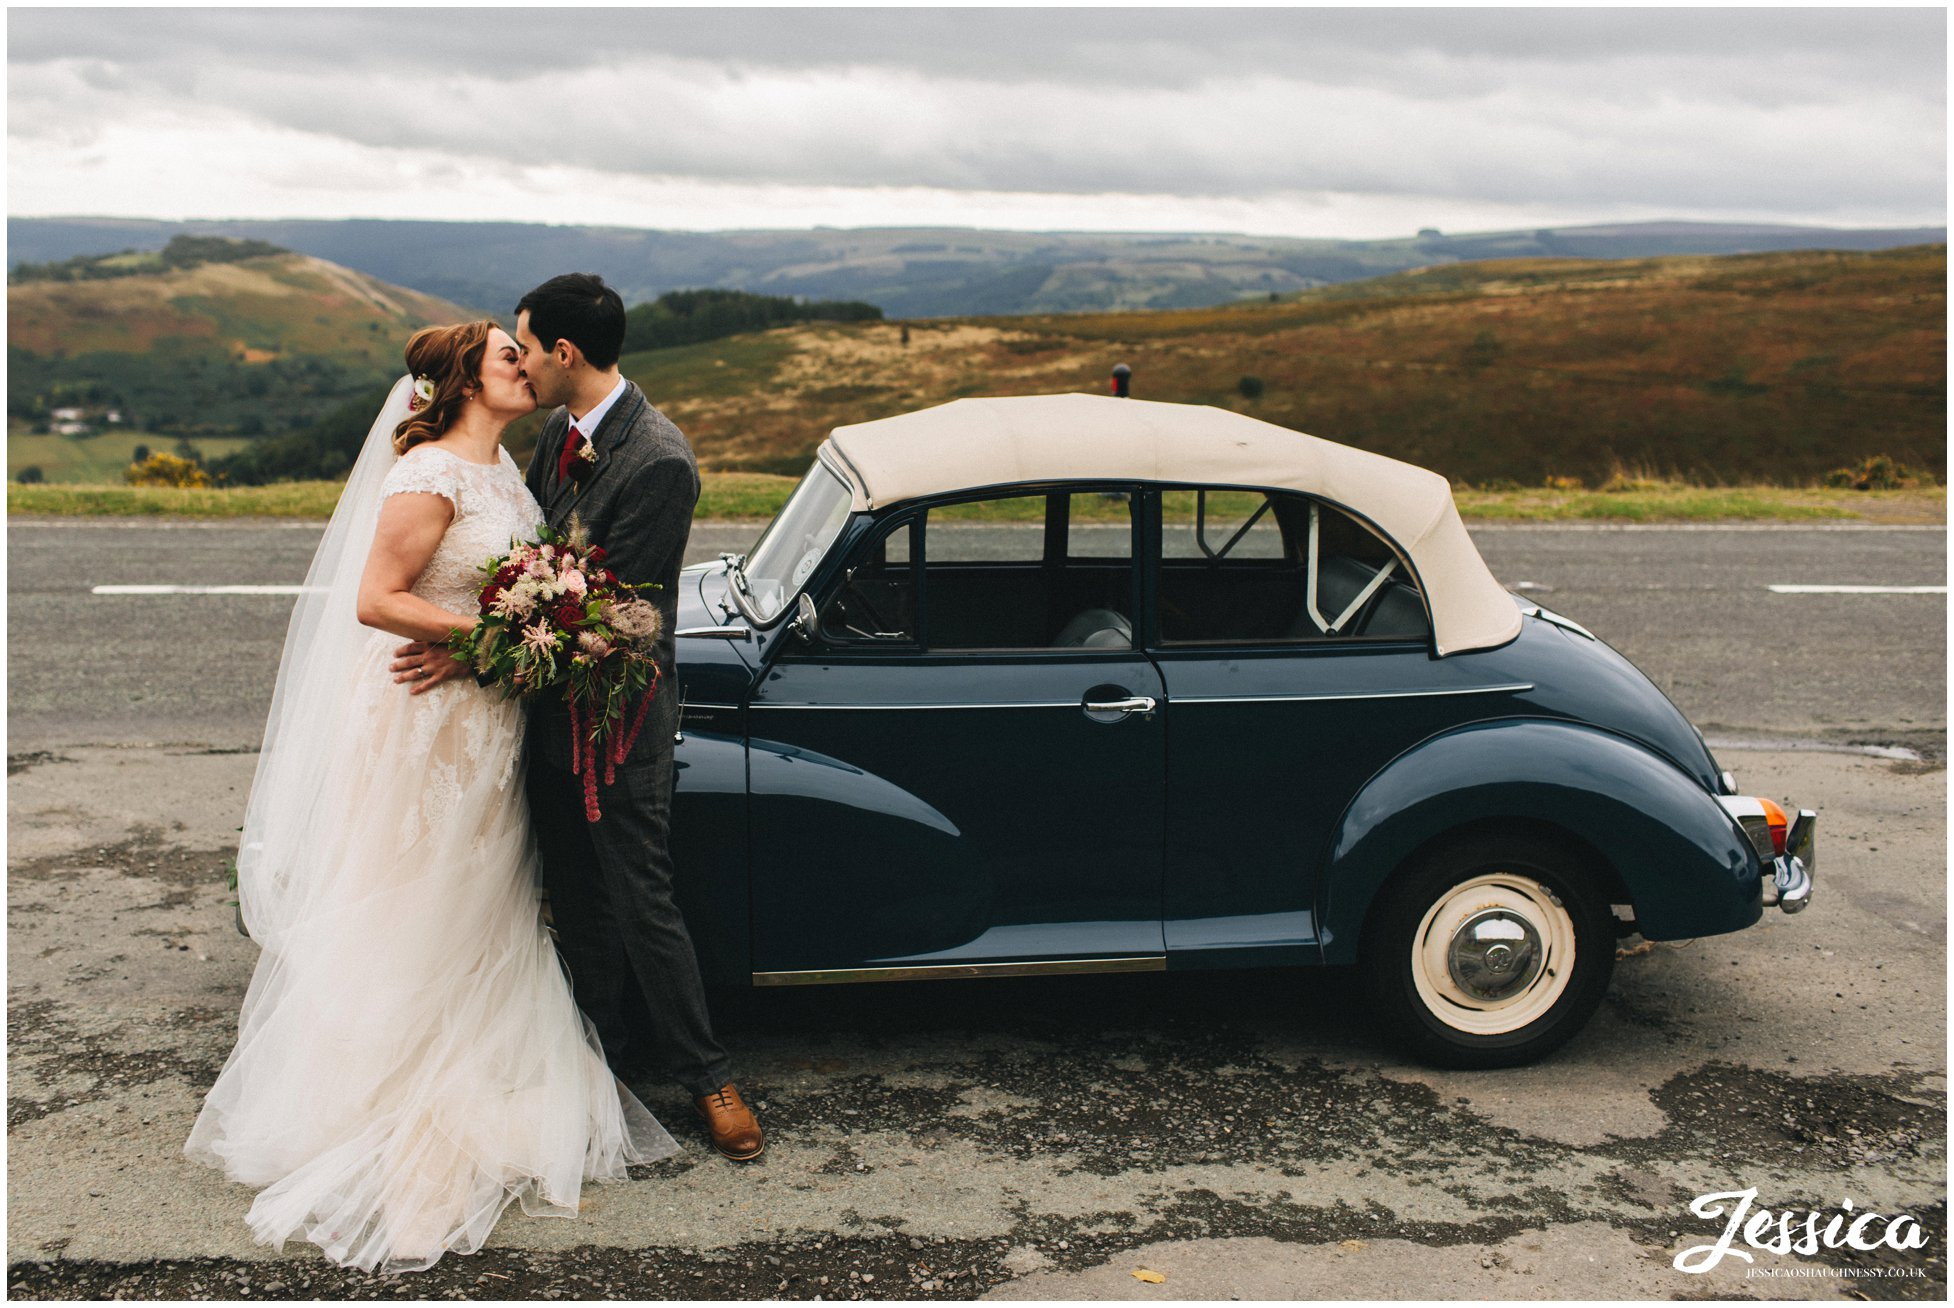 the couple pull over in a lay by for photographs